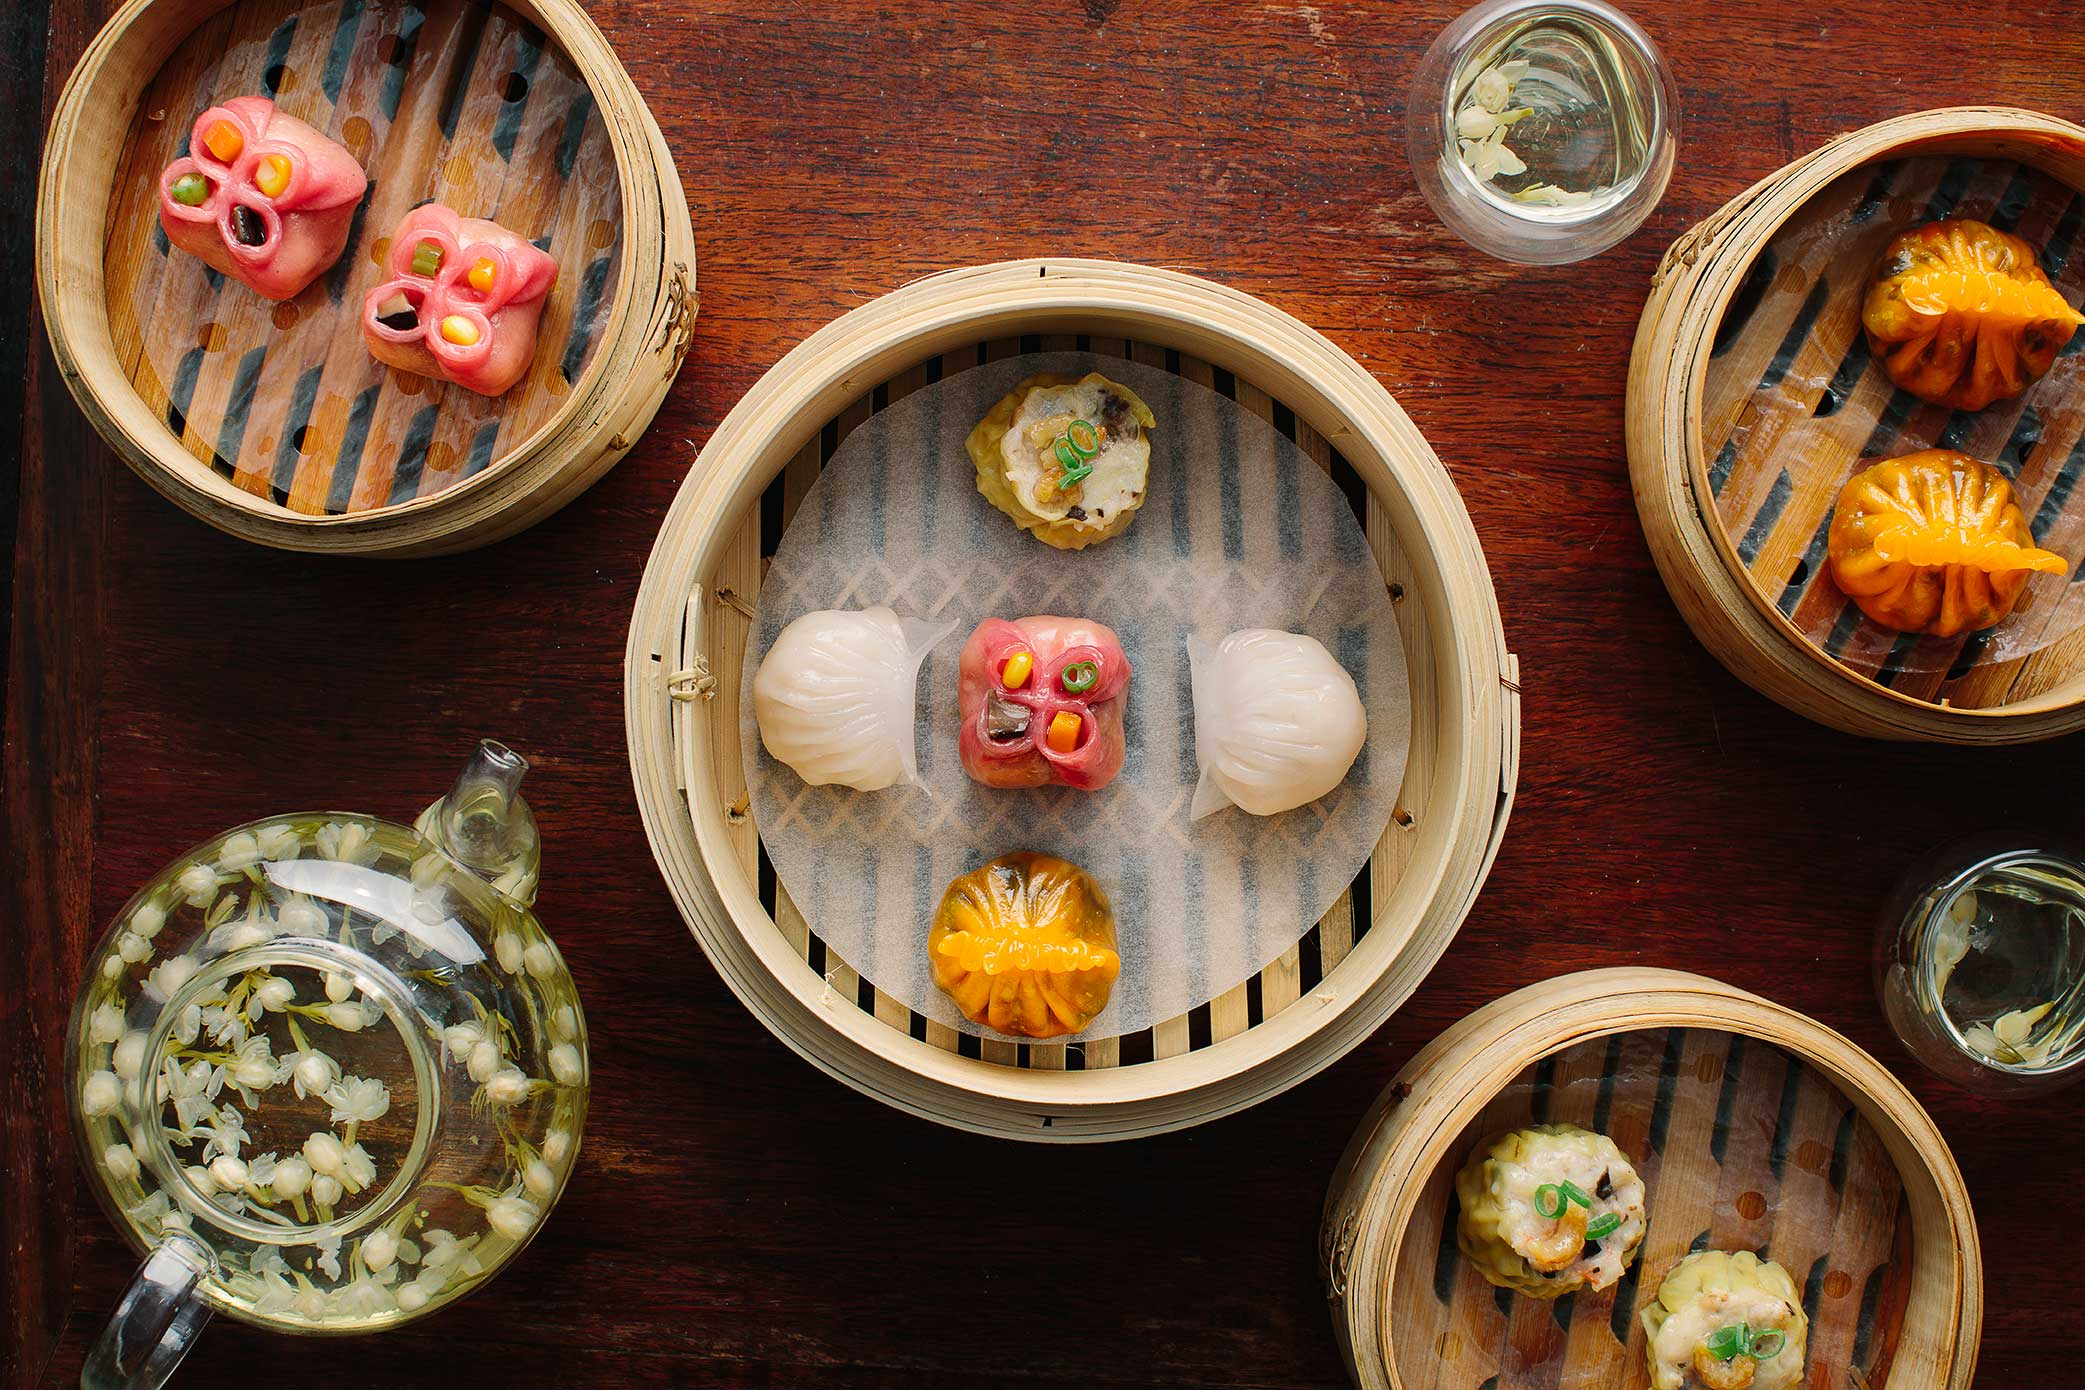 Dim Sum At The Al Bustan Palace Ritz Carlton Food Photography We Eat Together